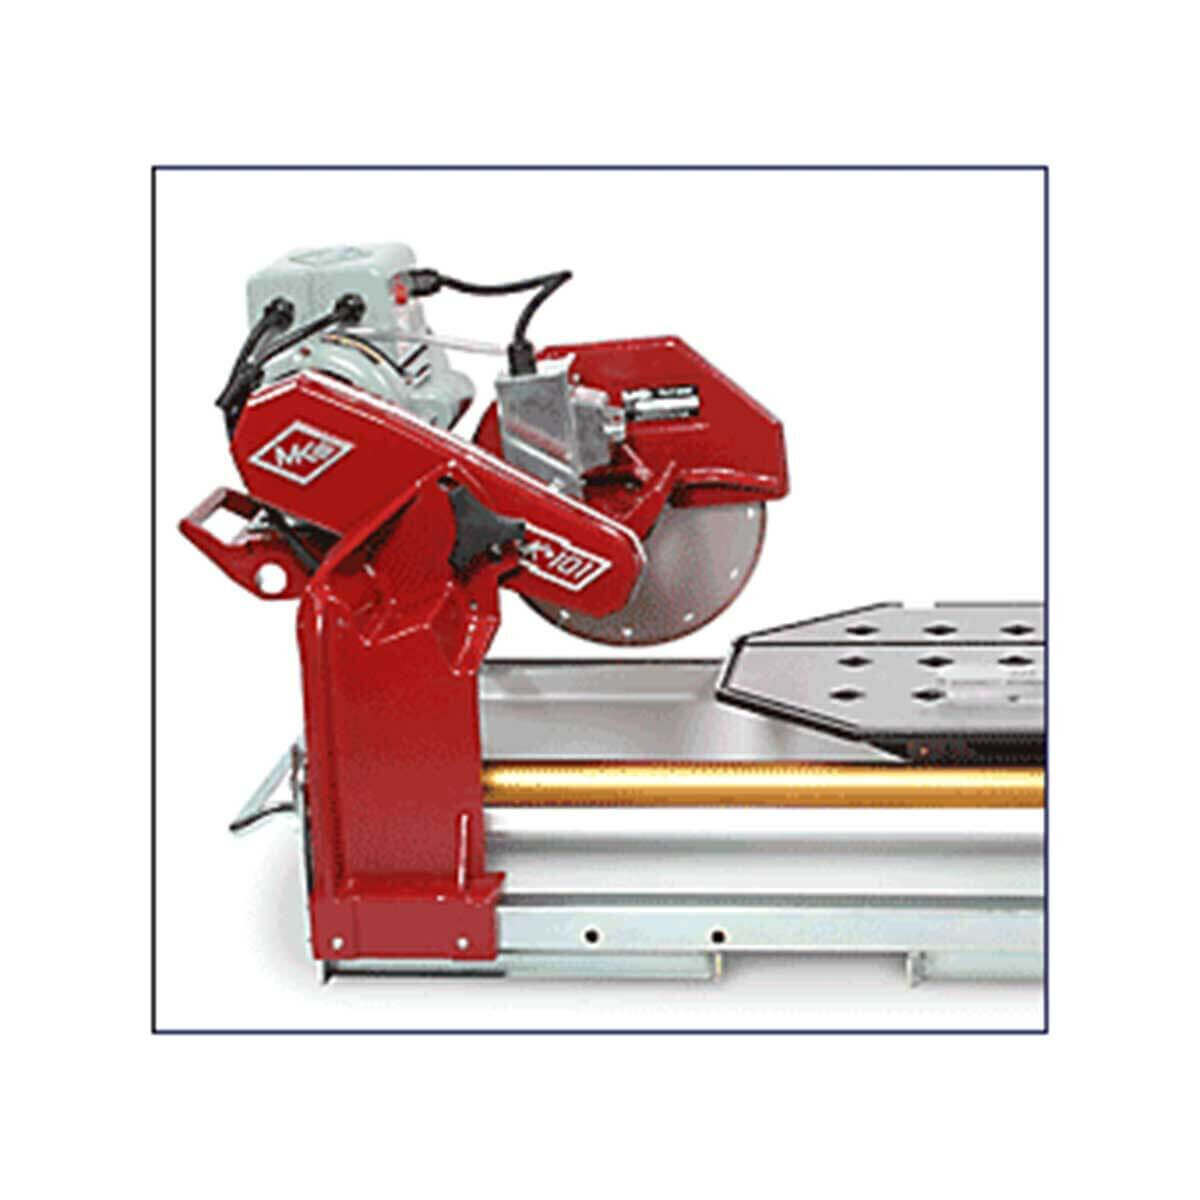 MK-101 Tile Saw, wet saw, tile saw, MK Diamond, porcelain saw, marble saw, ceramic saw, glass saw, porcelain tile saw, marble tile saw, ceramic tile saw, glass tile saw